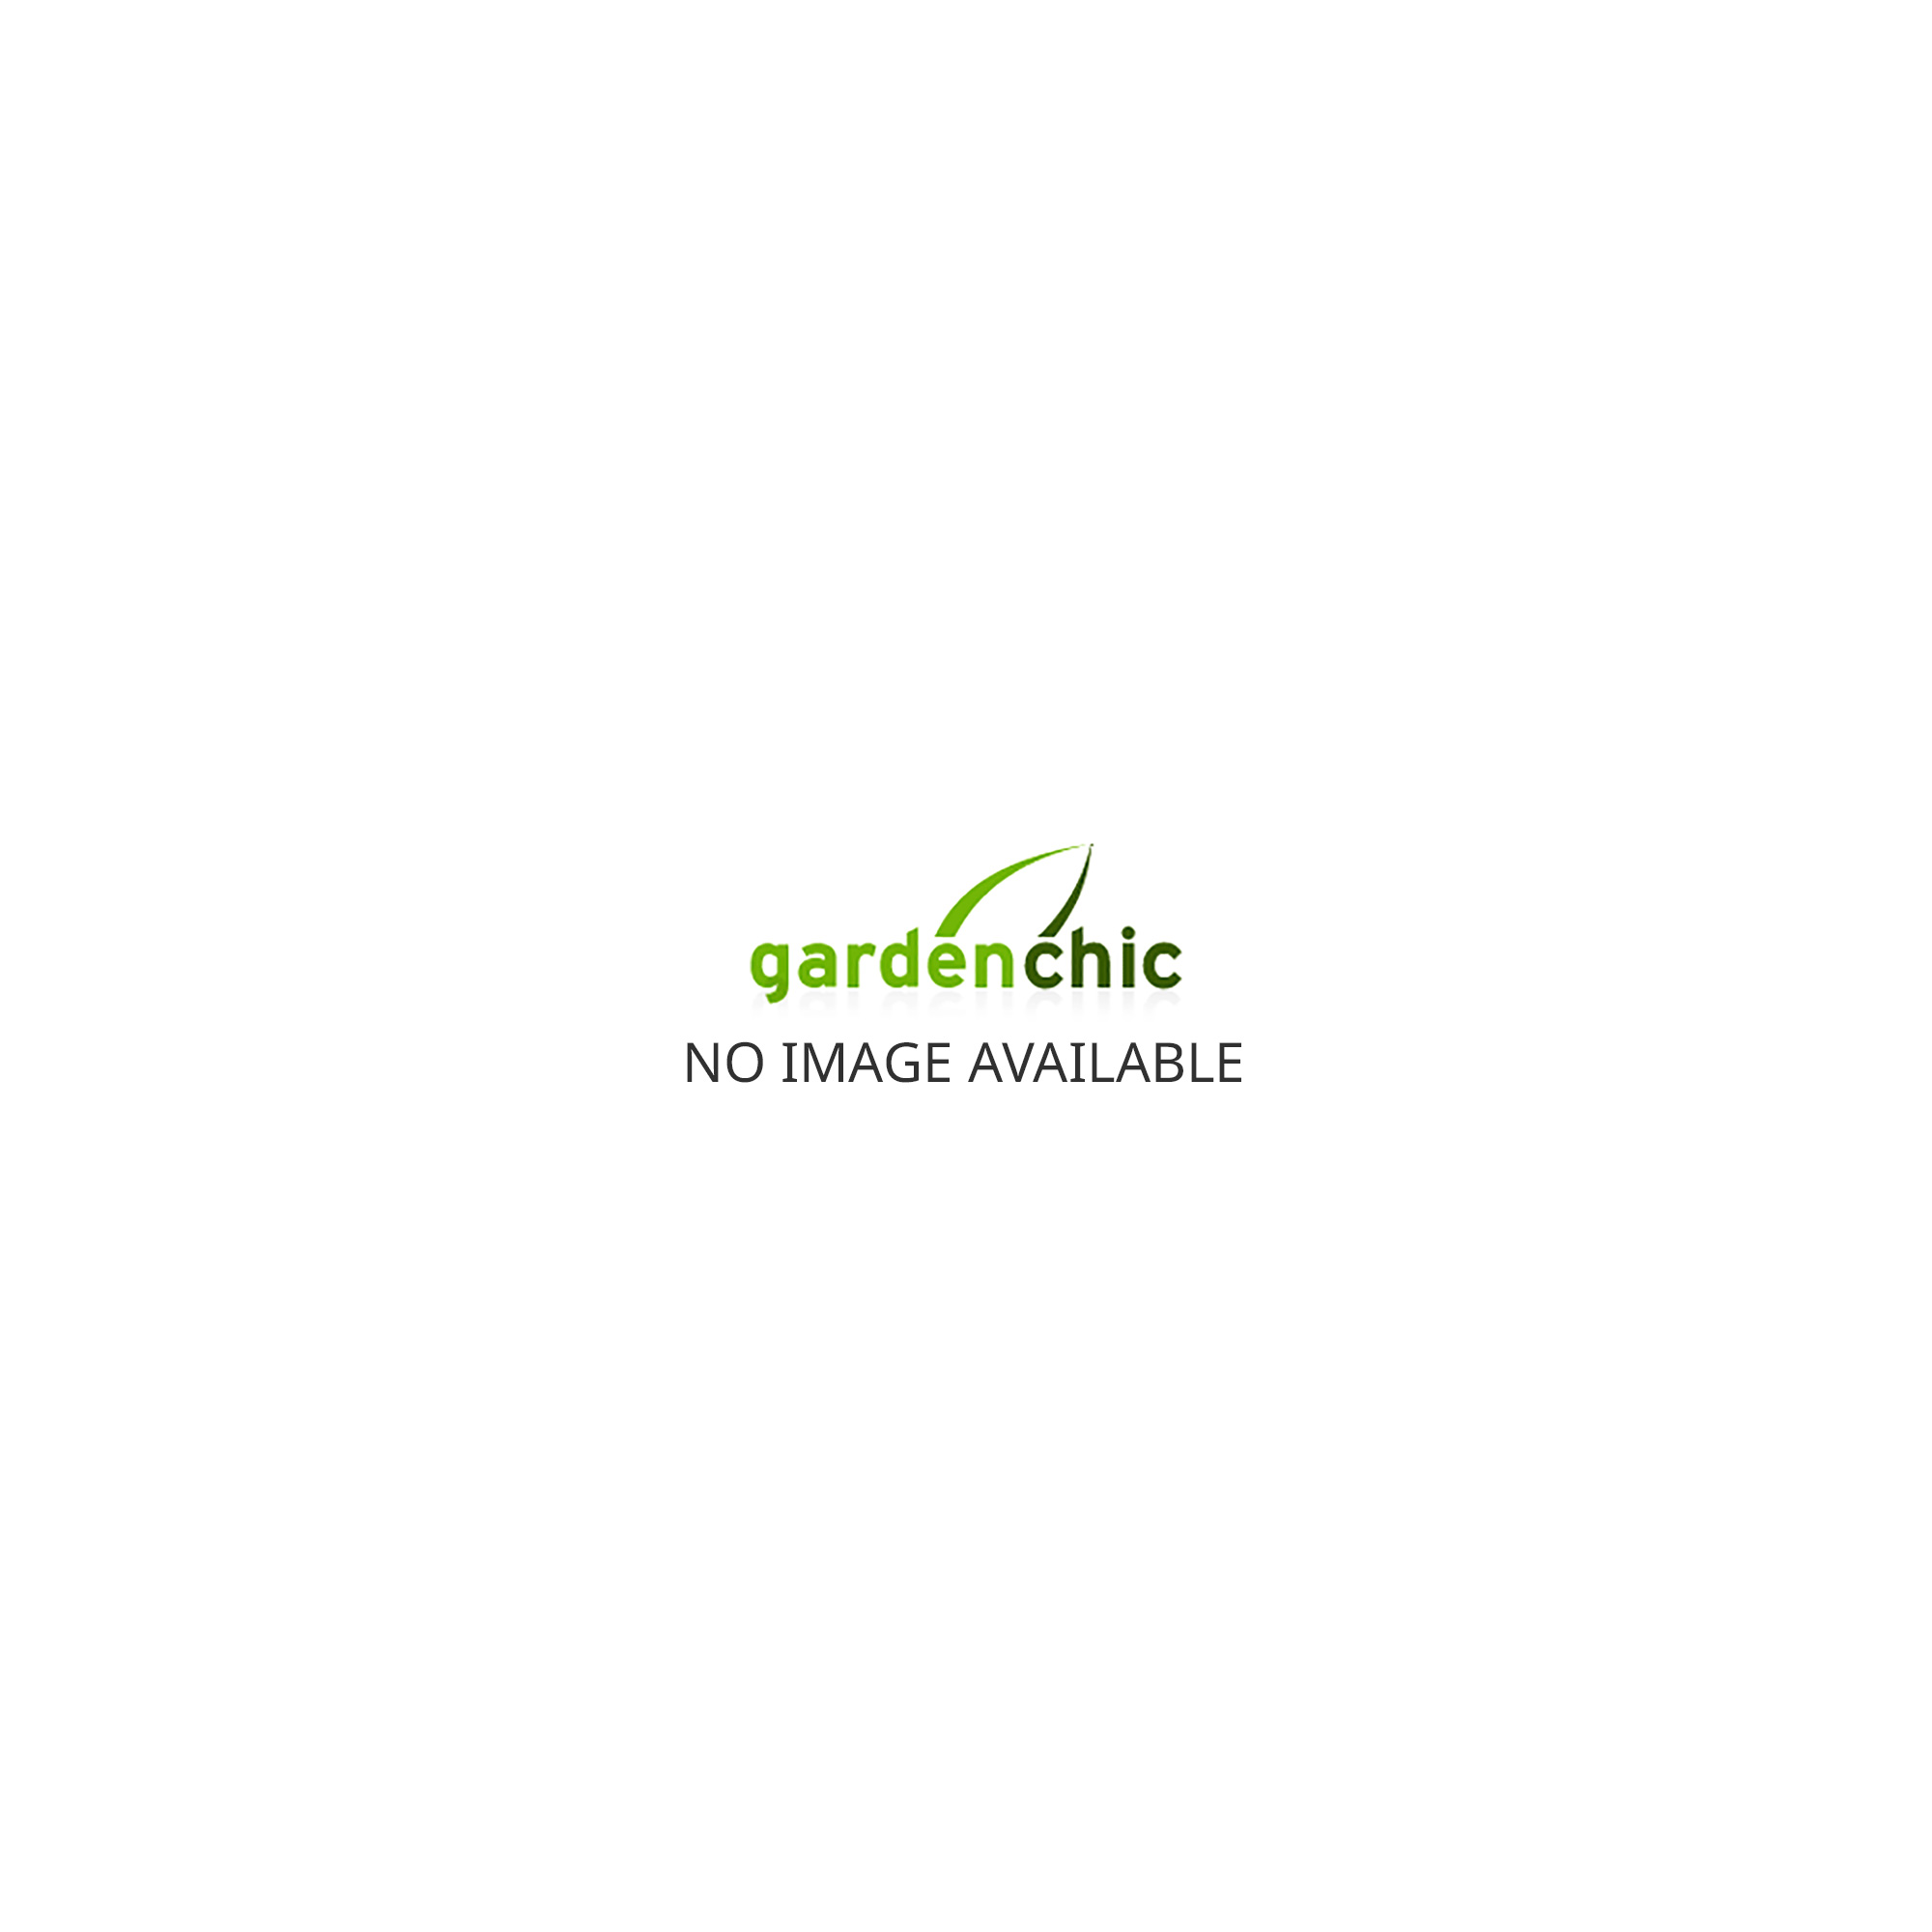 IDA 3300 Wall Garden 8ft x 4ft Greenhouse - Green FREE Matching Base until APRIL 2018